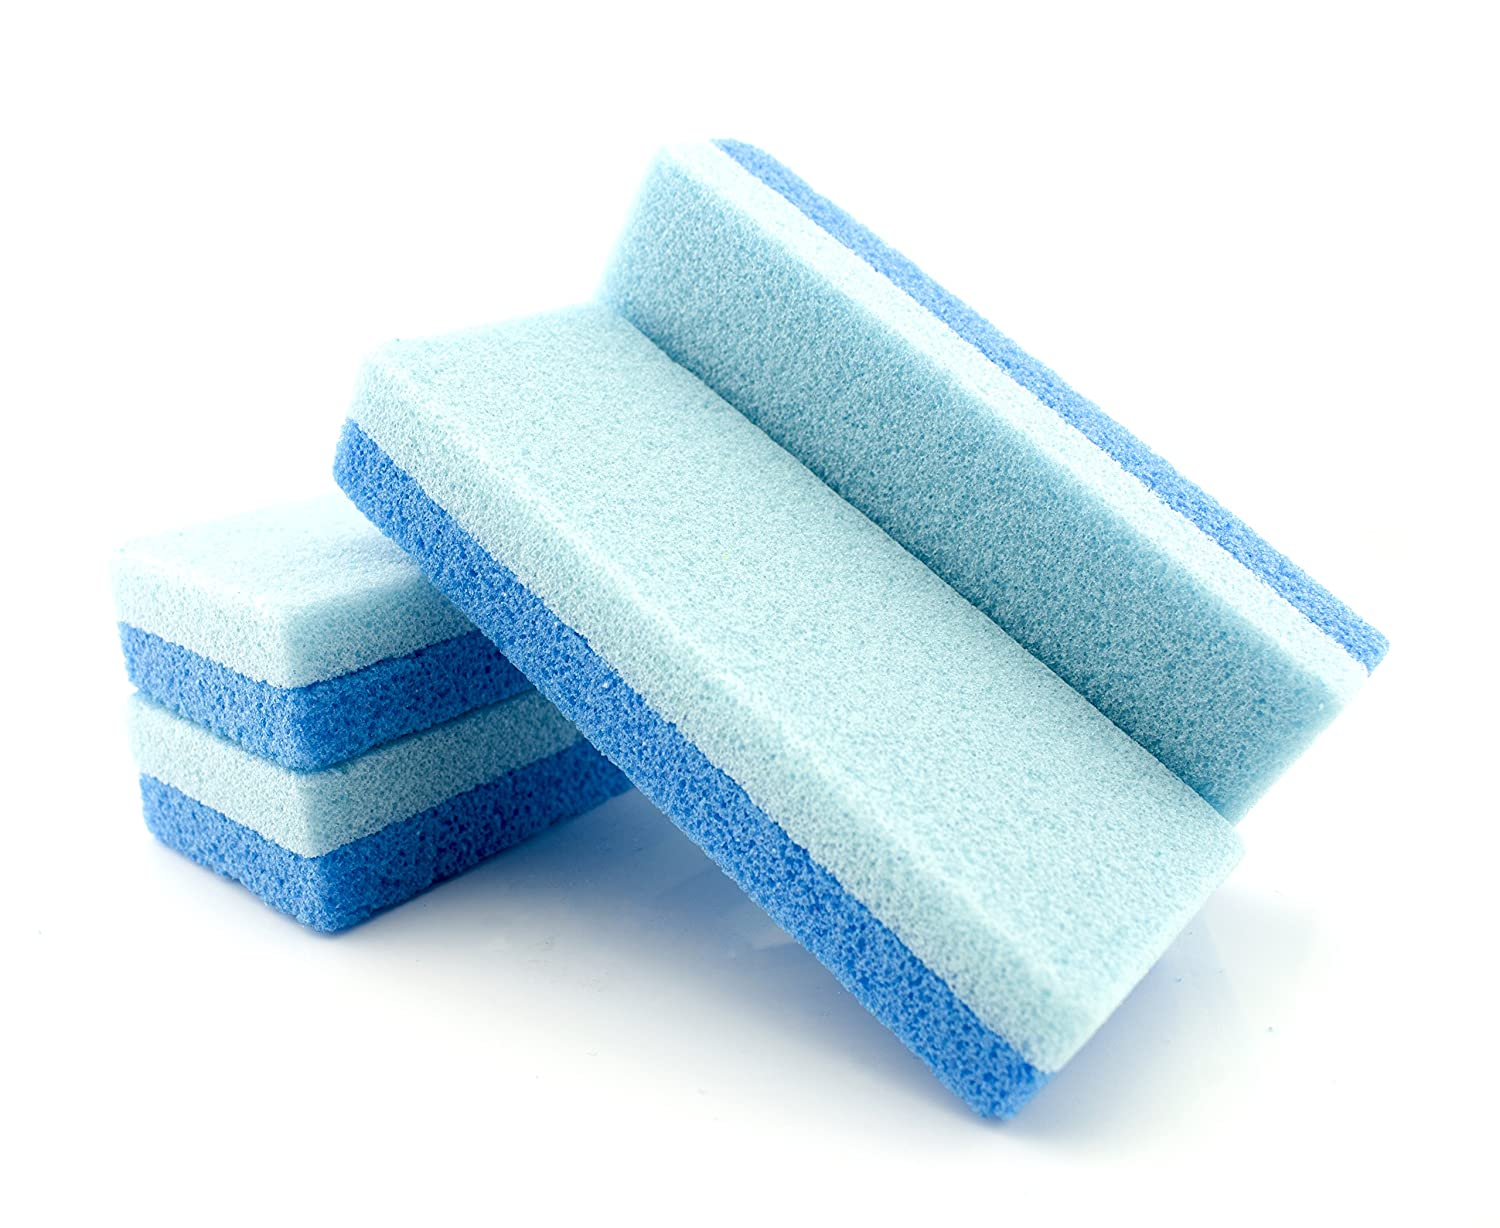 N.e.i Ultimate Popular product Blue Tucson Mall Pumice 4-pack Pad